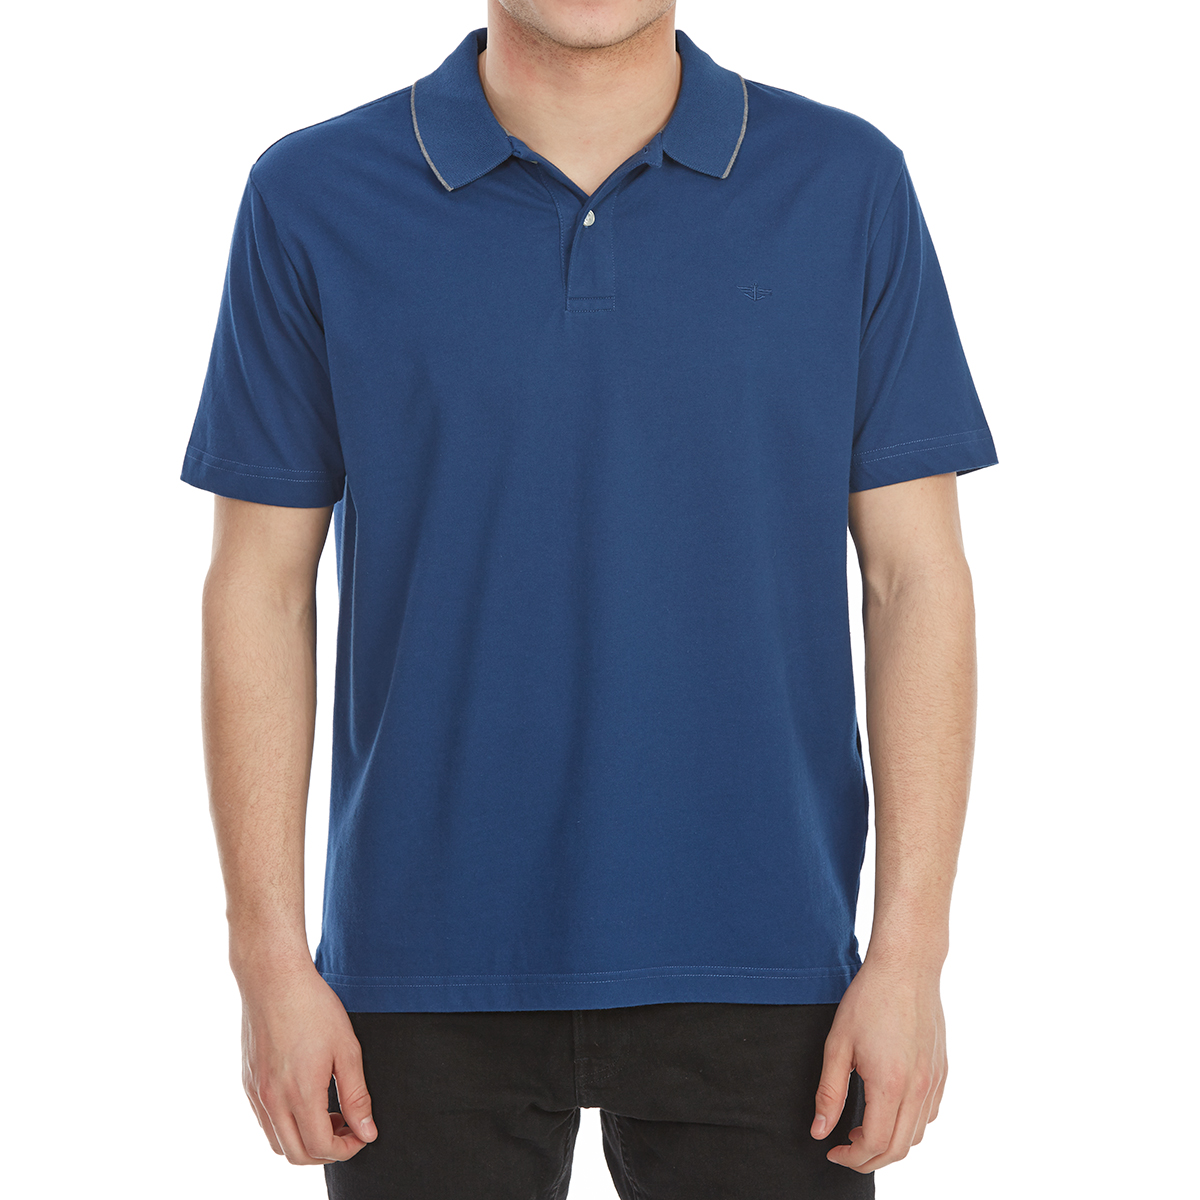 Dockers Men's Performance Short-Sleeve Polo Shirt - Blue, M